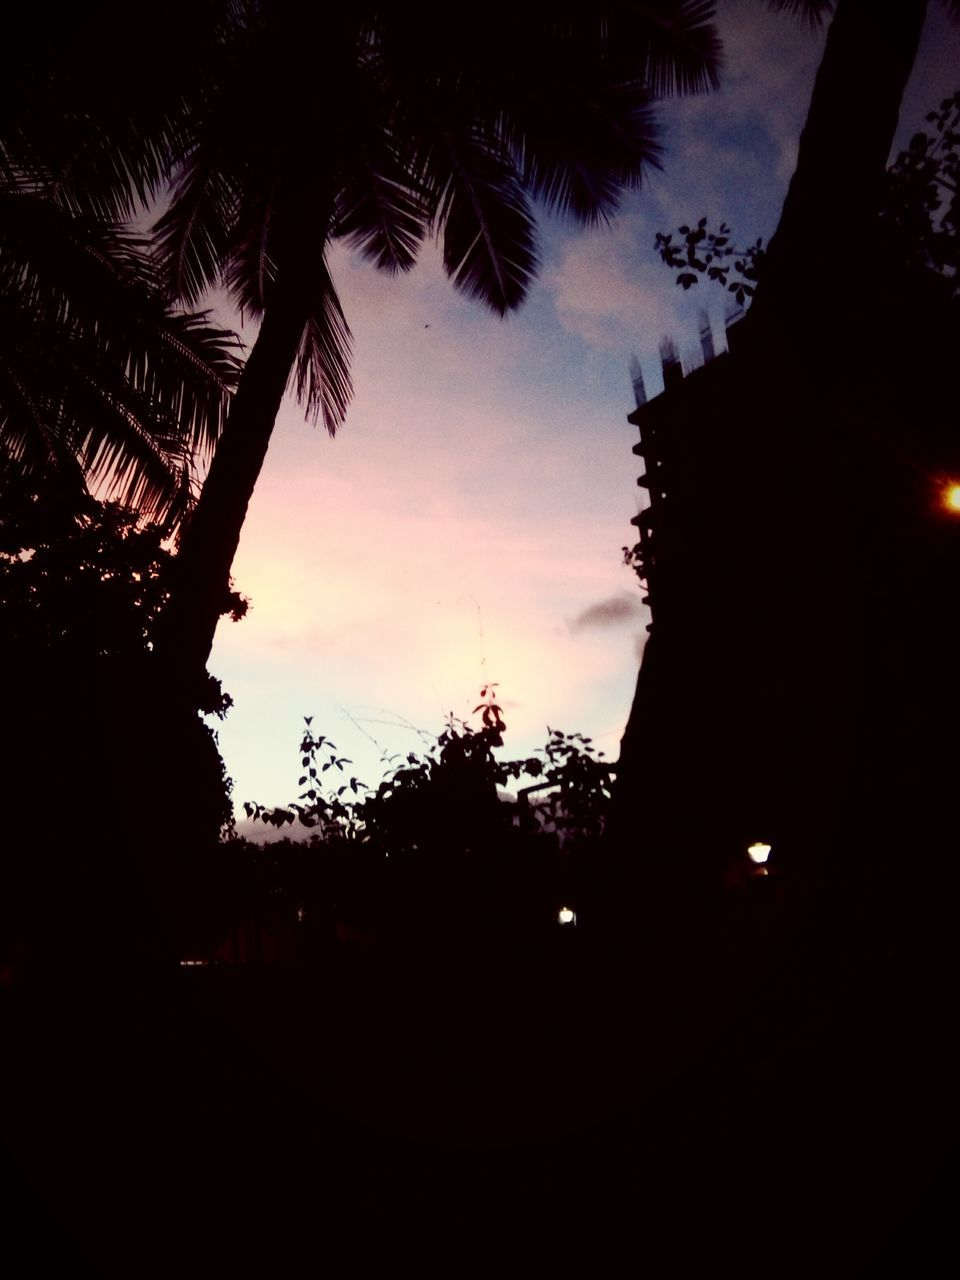 tree, silhouette, sunset, no people, low angle view, growth, sky, outdoors, nature, palm tree, beauty in nature, branch, day